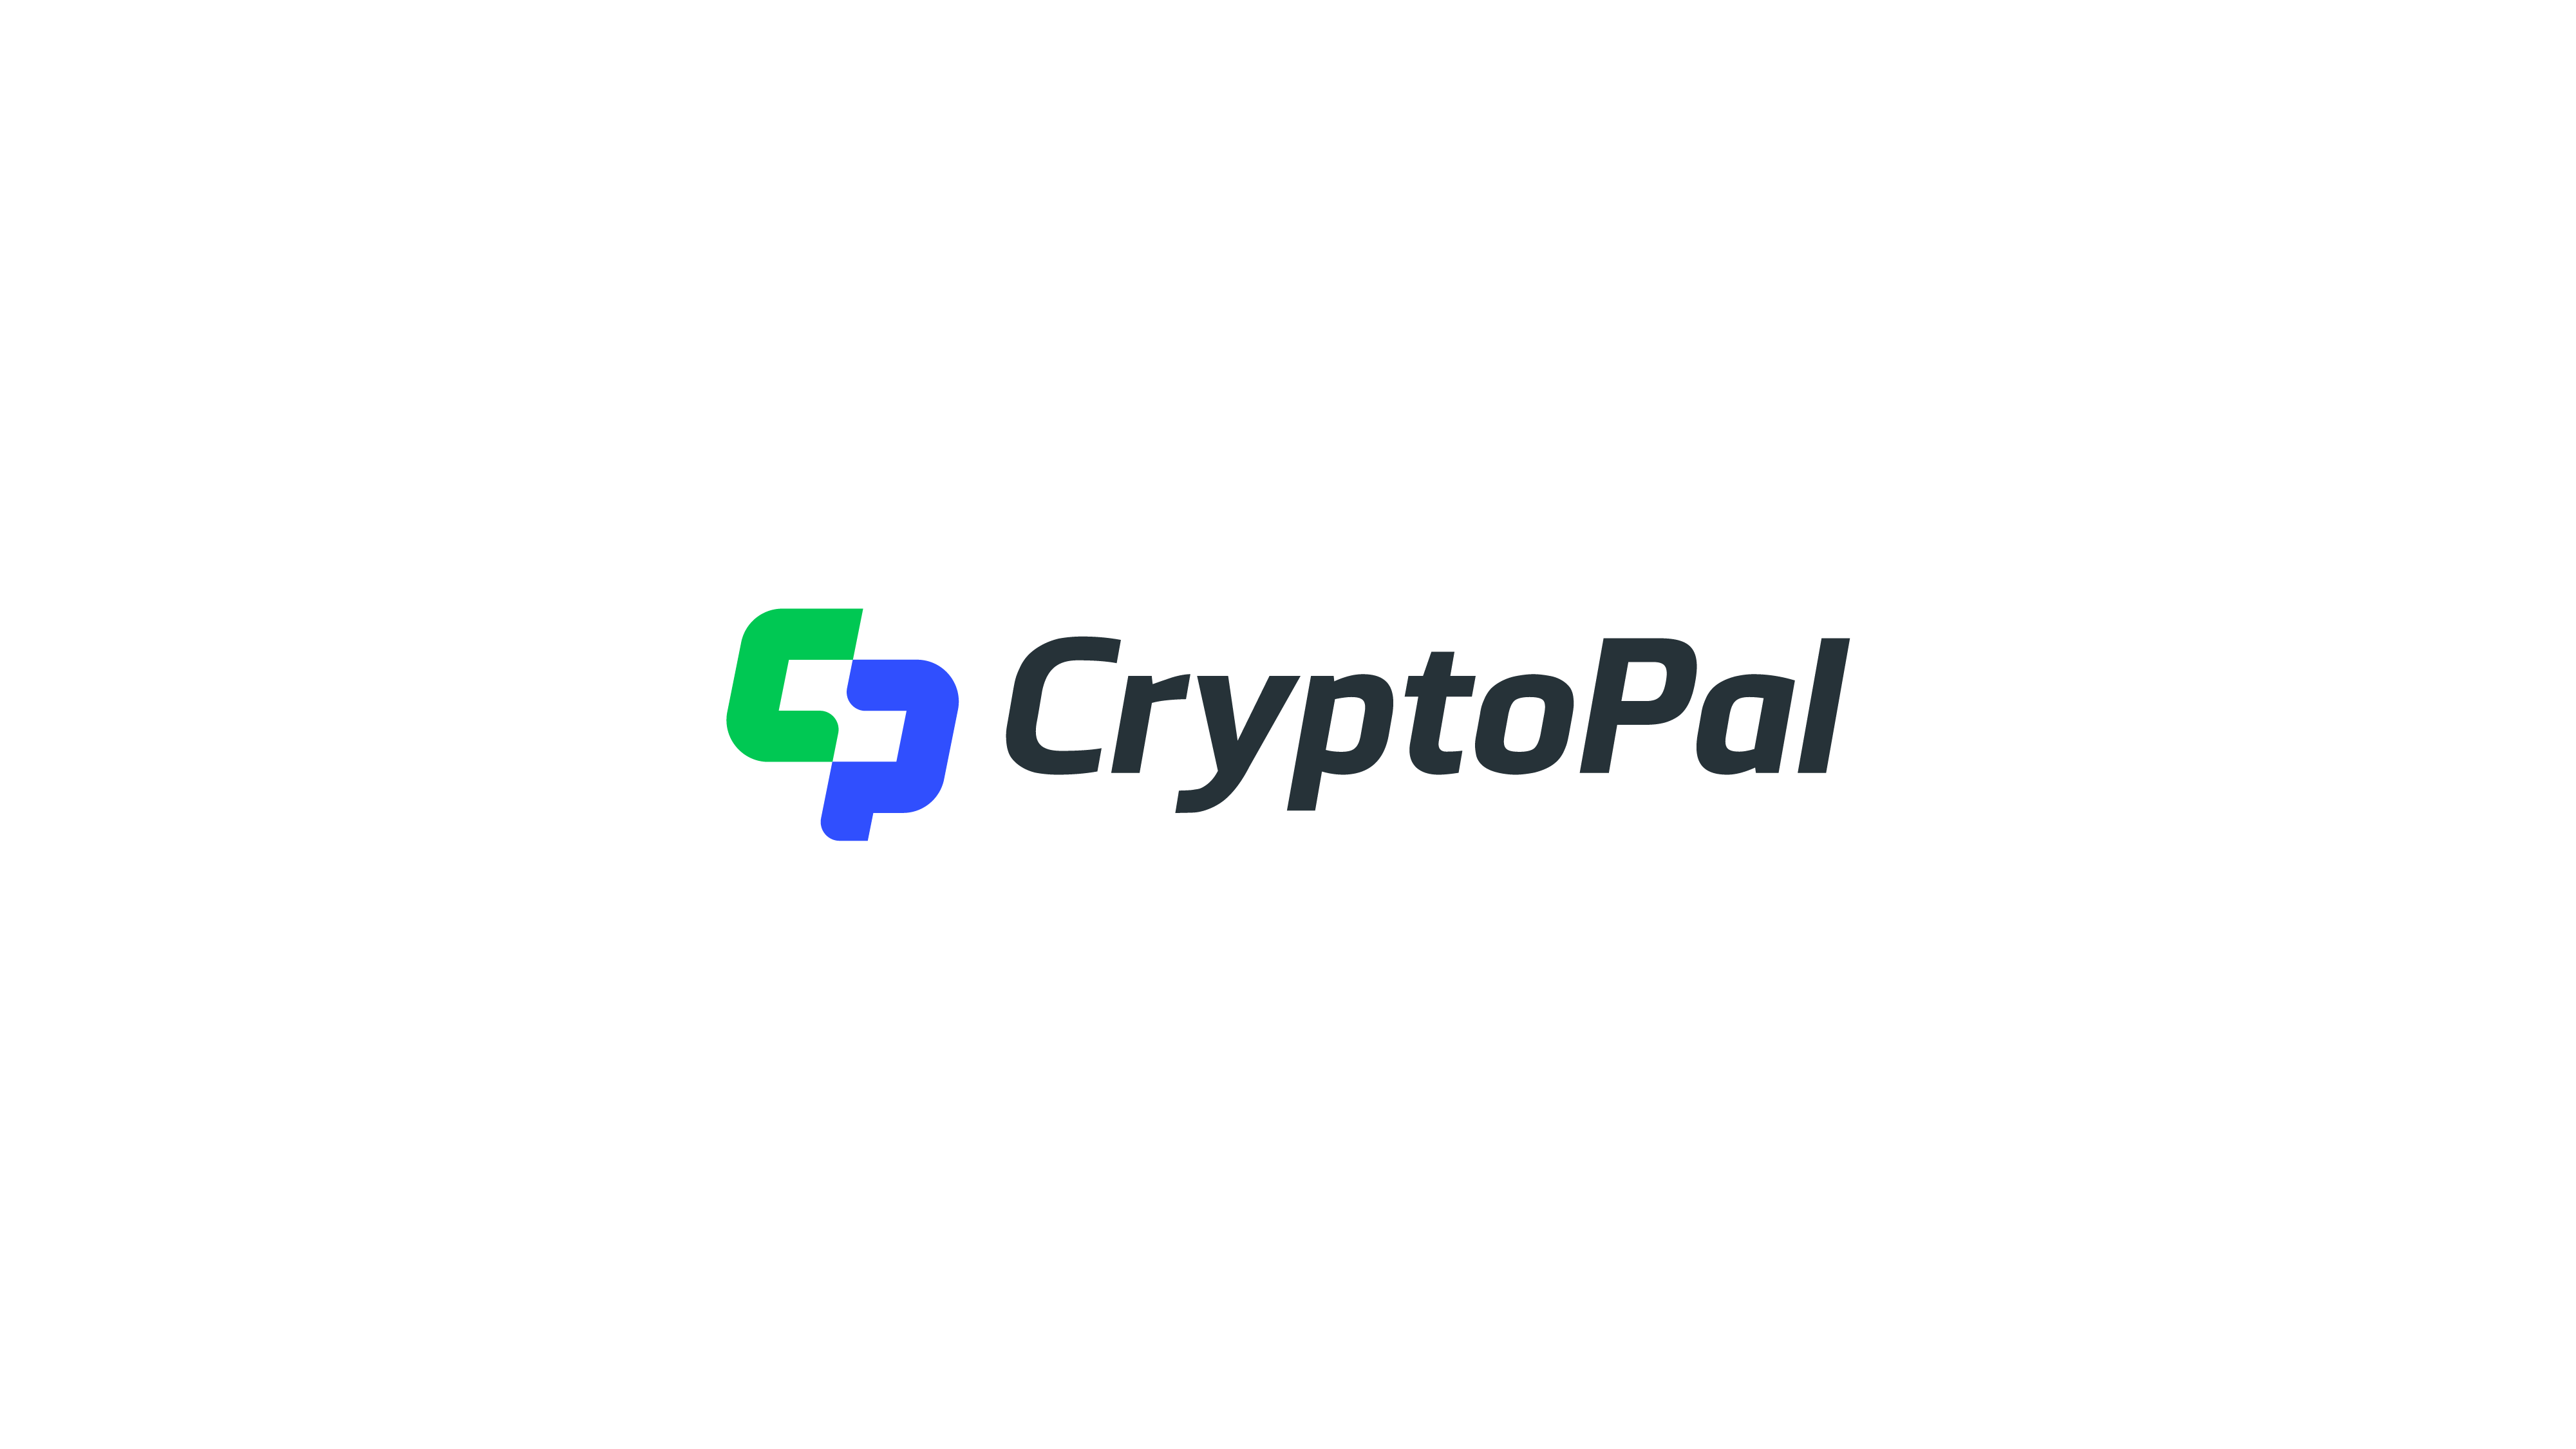 creative initial CP logo for crypto wallet project